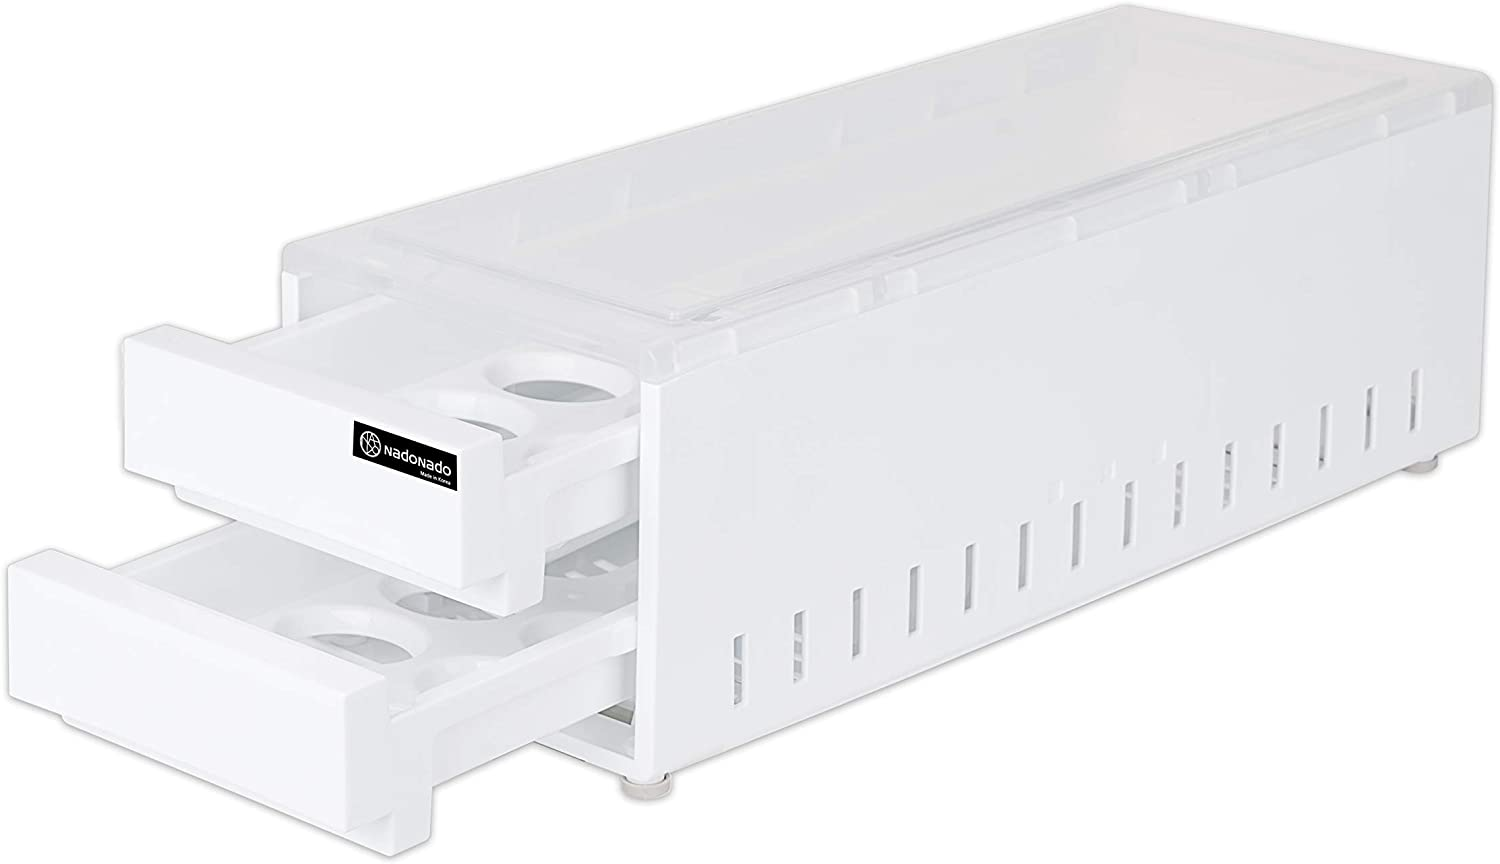 NadoNado ND-EG32, Egg Holder for Large Refrigerator, 2-Story Drawer Type Egg Storage Organizer, Container for 32 Eggs, BPA-Free Plastic, White and Translucent, 6.5W x 16.3L x 5.6H inches of Egg Tray